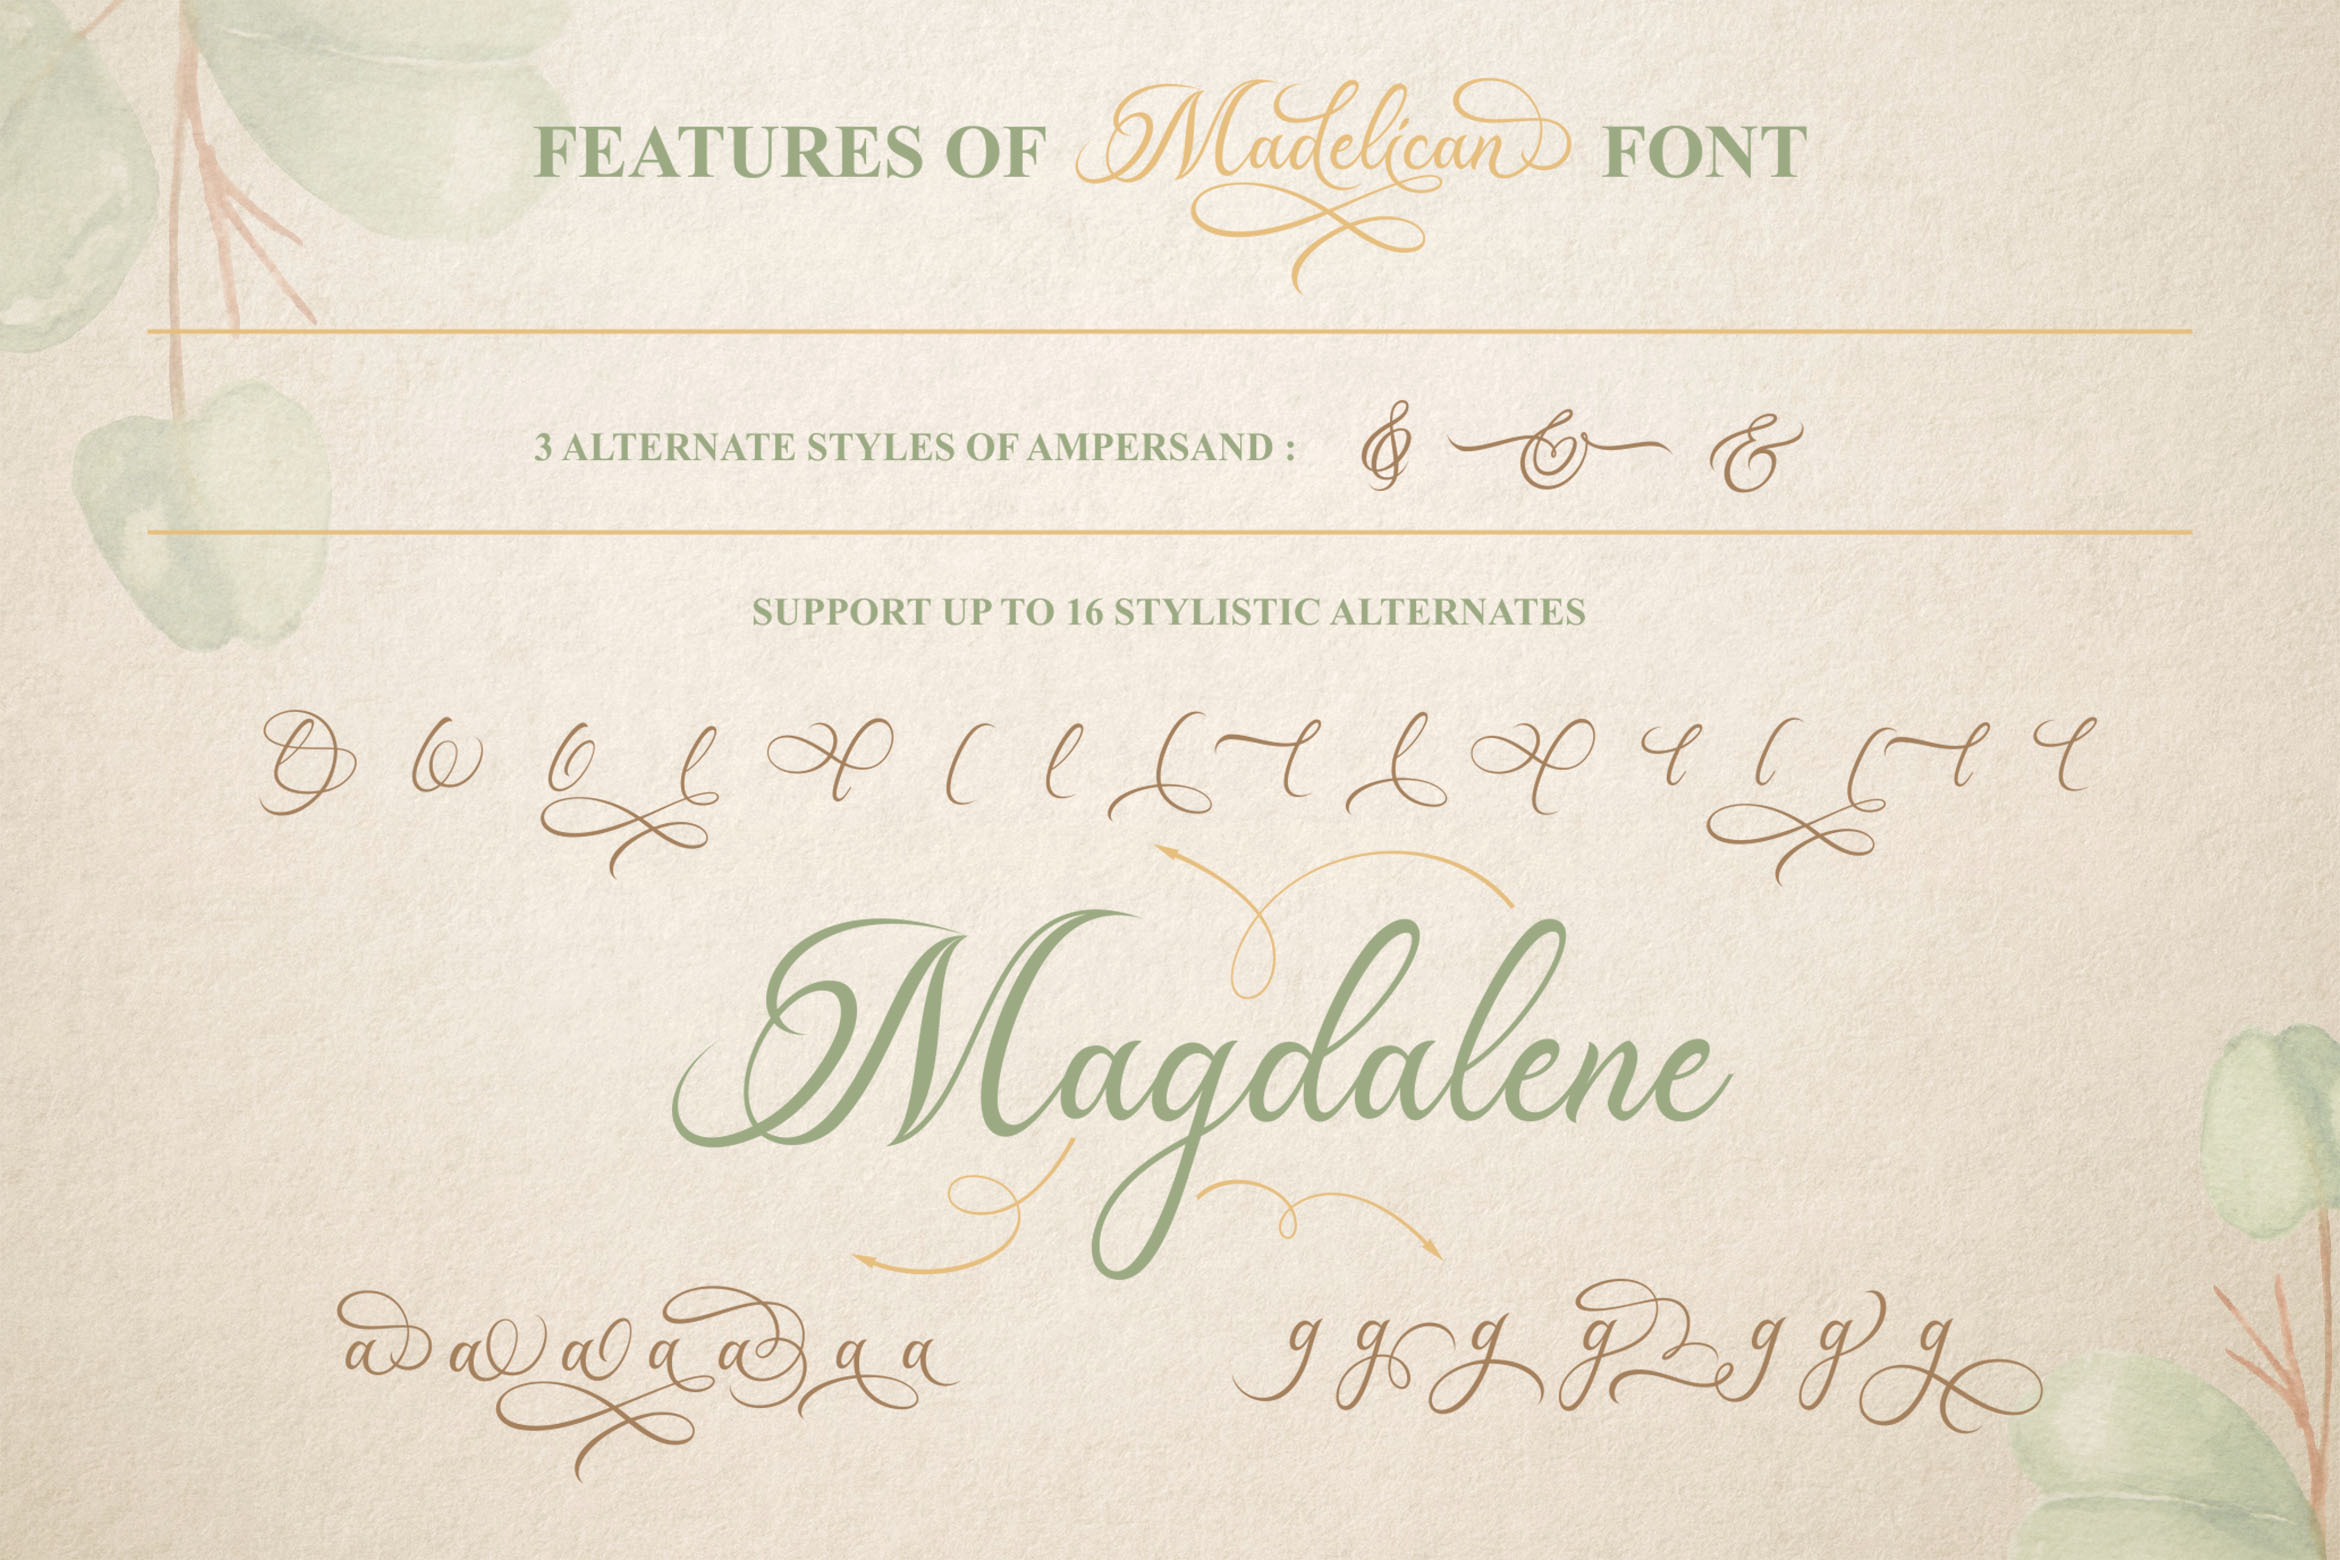 Madelican Calligraphy Font example image 4